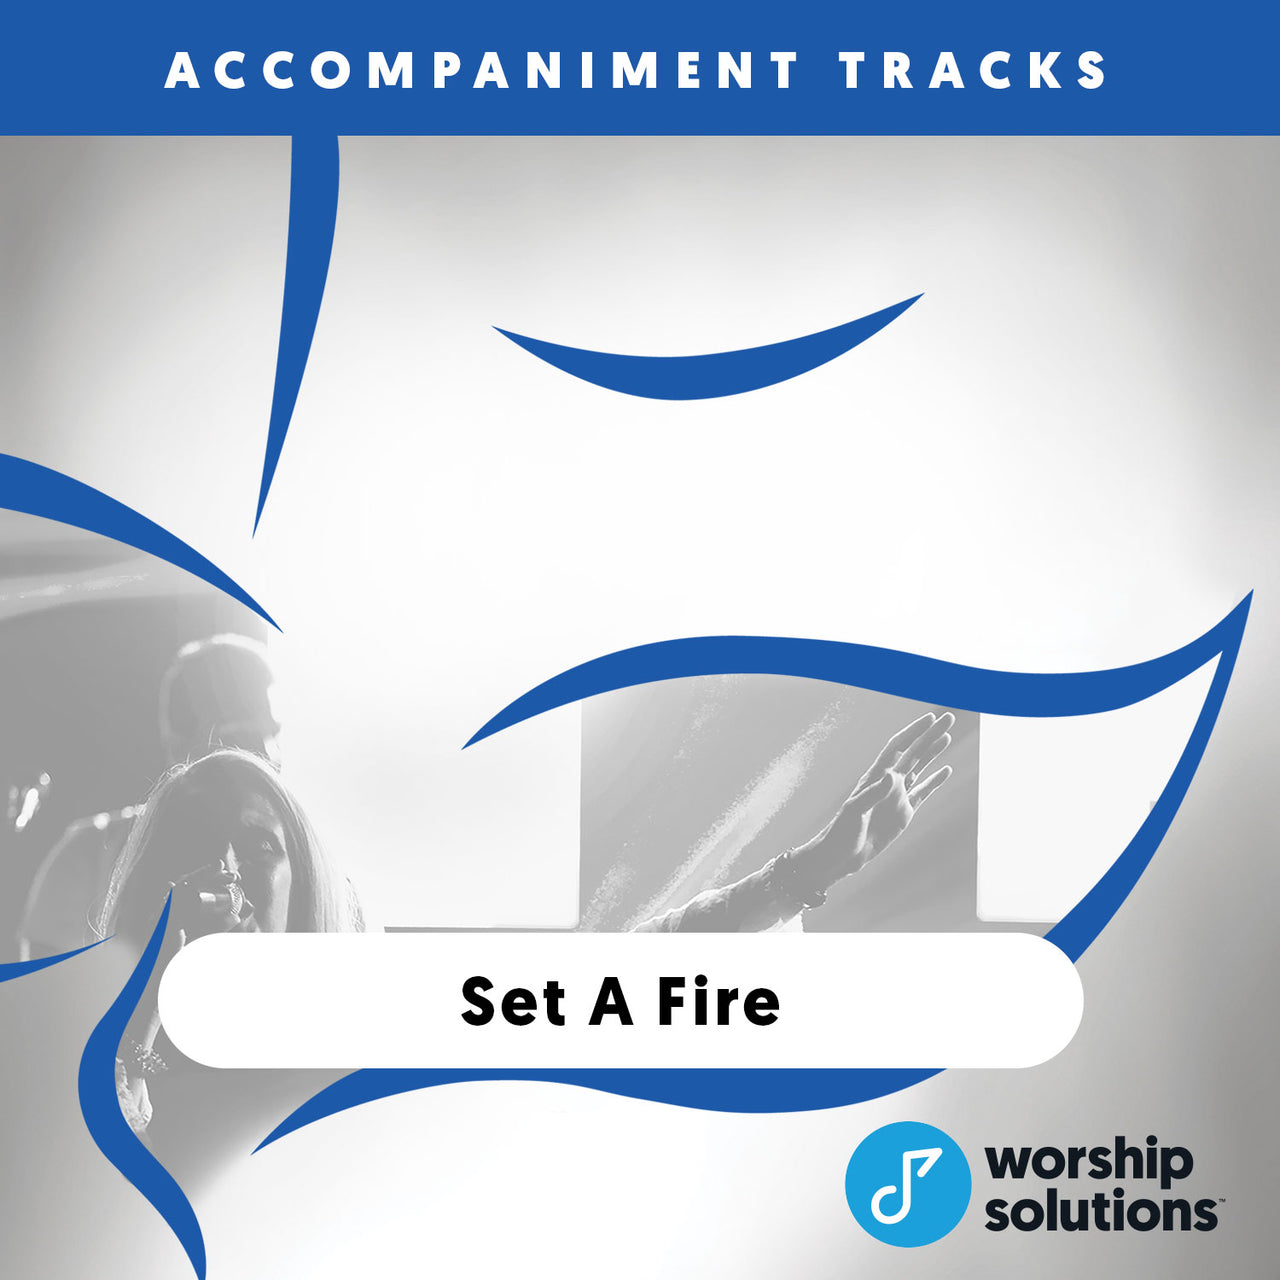 Set A Fire, Accompaniment Track